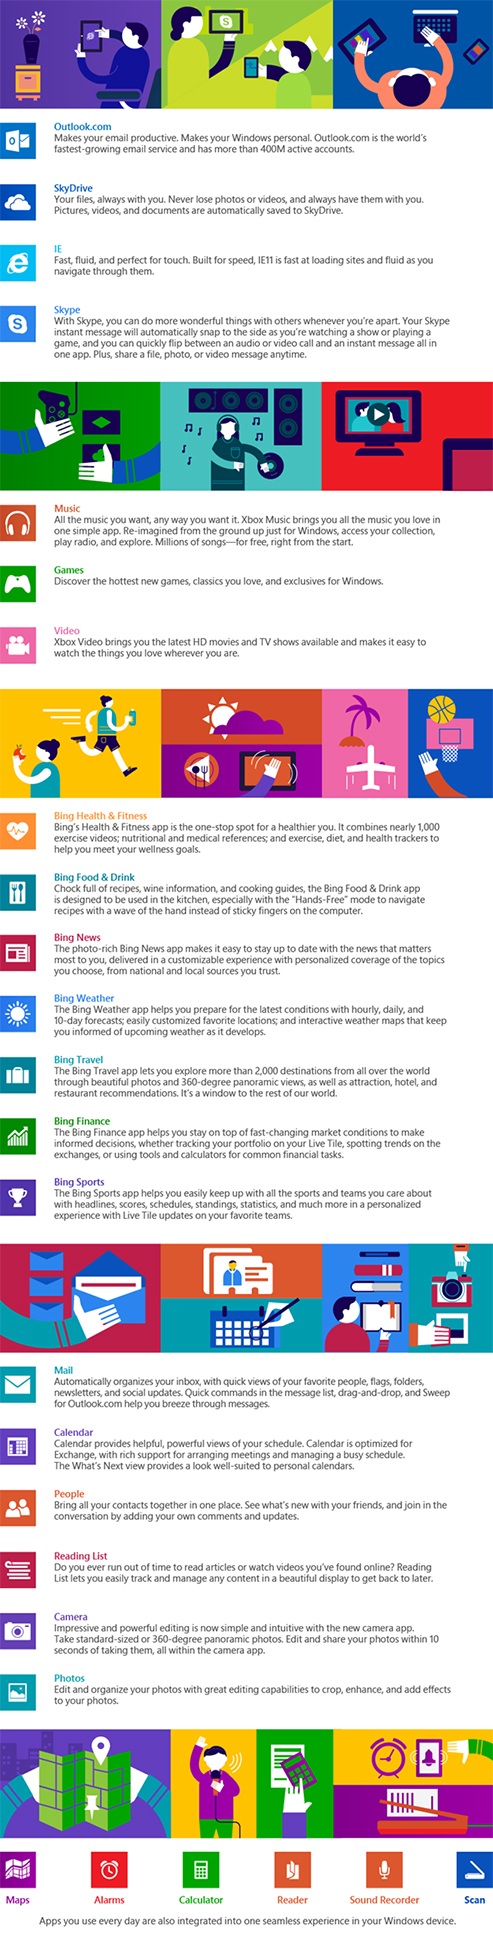 infographic_windows_8_1apps